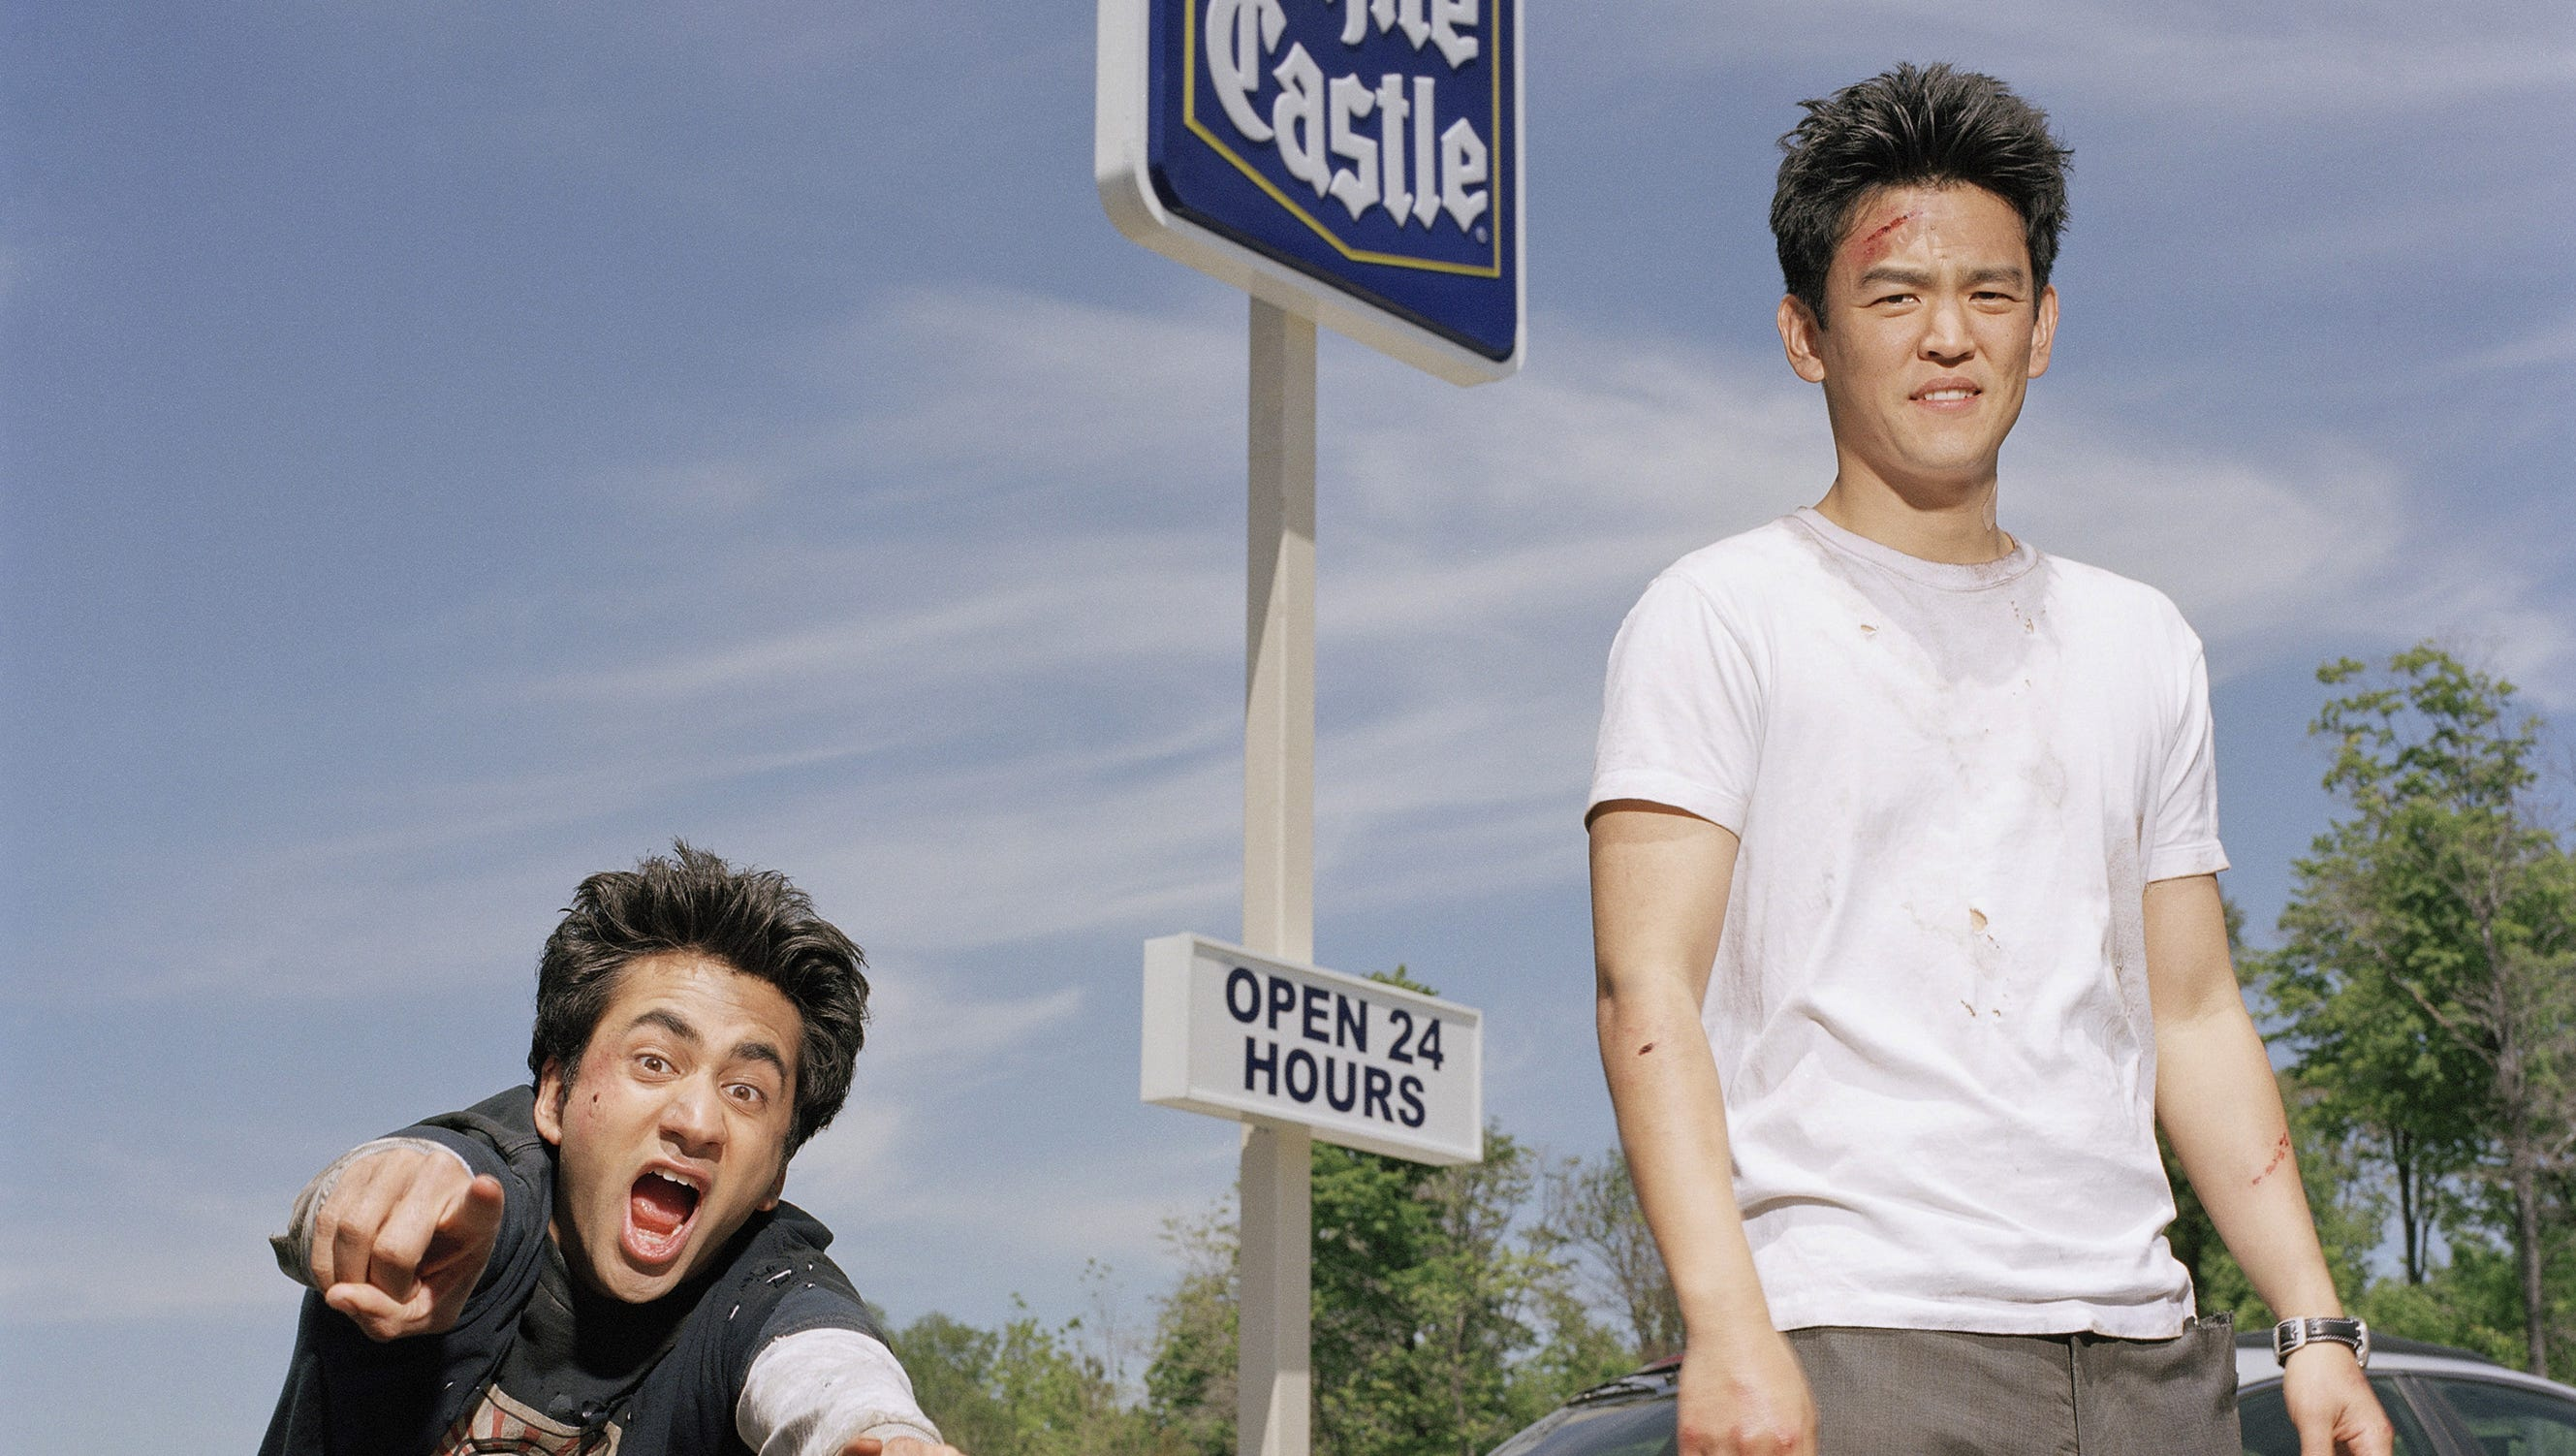 ' Harold and Kumar' didn't get those White Castle burgers but the film did put Kal Penn, left, and John Cho, on the map.